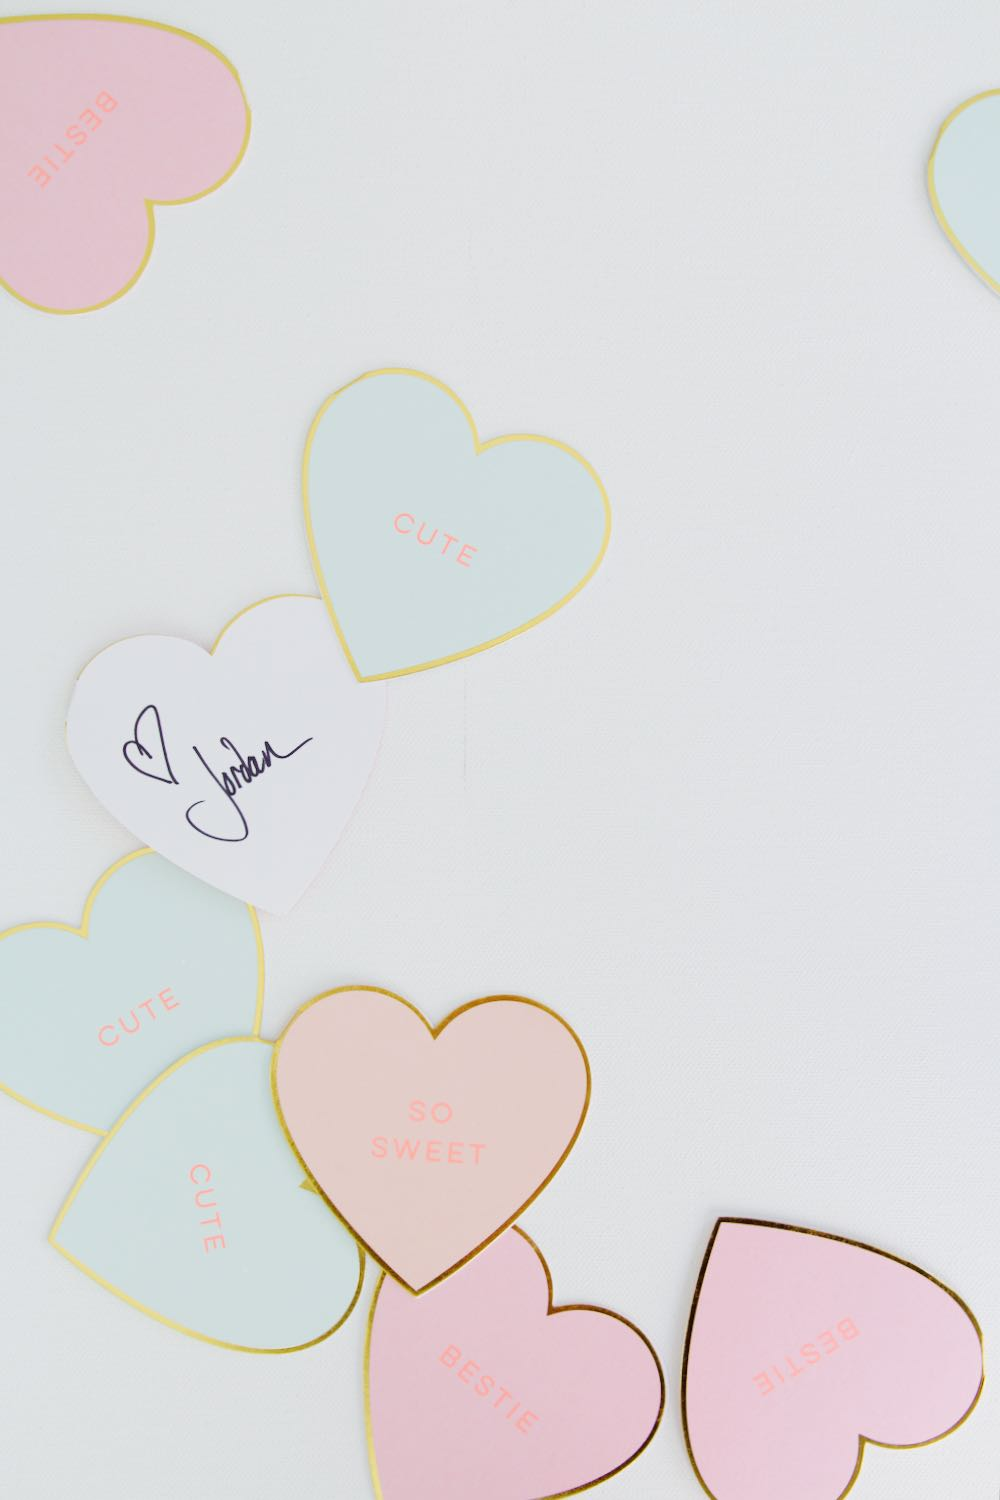 Heart notecards in pink, mint and gold for Valentine's Day